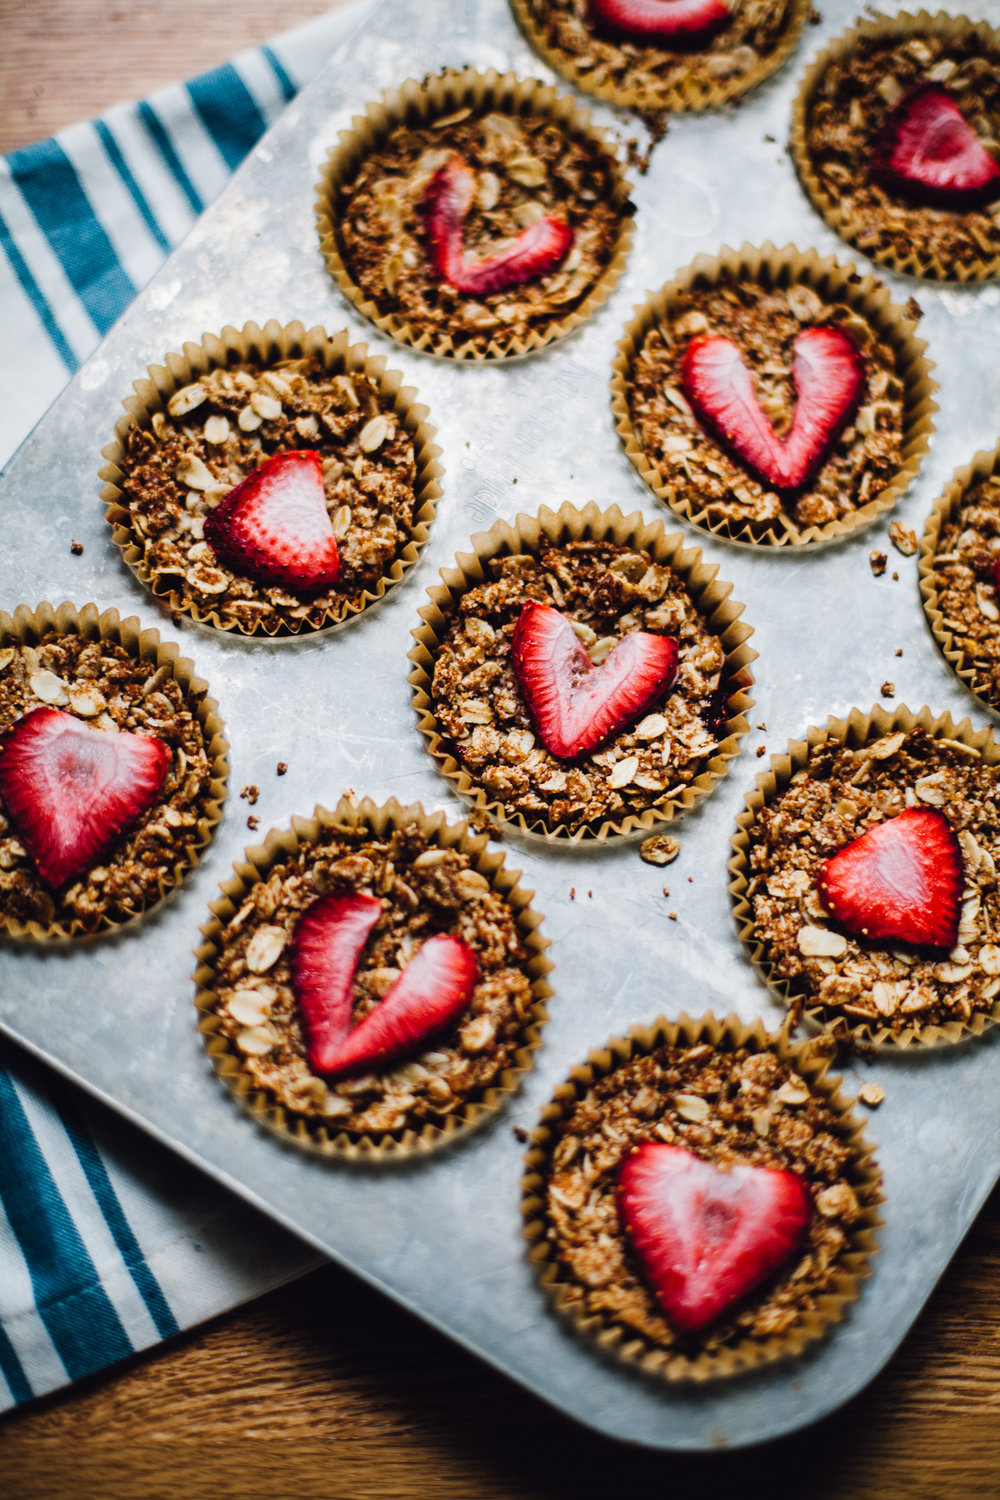 strawberry rhubarb crumble bites | vegan and gluten free recipe via willfrolicforfood.com